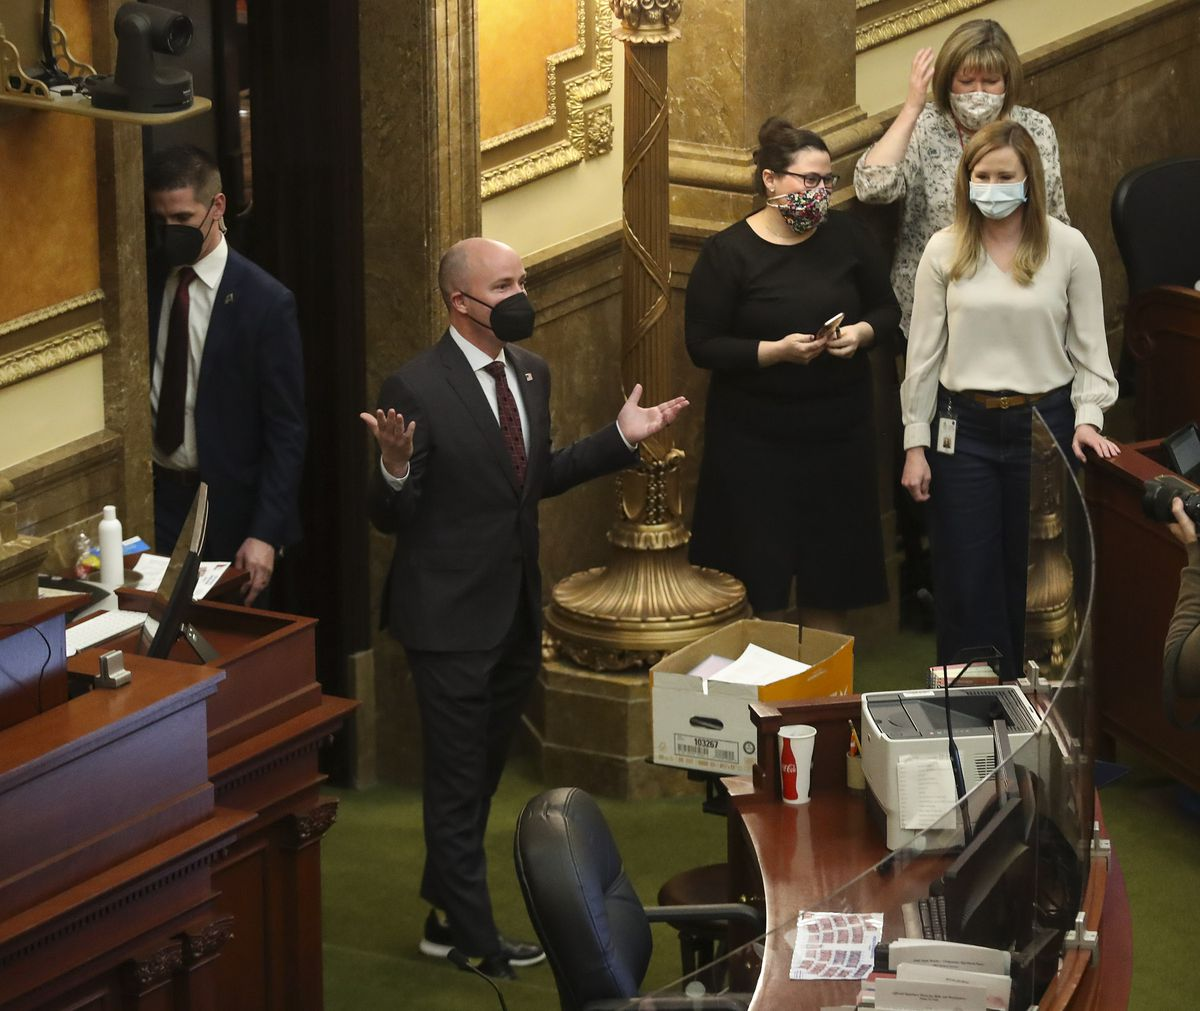 Gov. Spencer Cox, center, throws his hands in the air as he enters the House chamber after jokingly being introduced as Gov. Gary Herbert by Rep. Francis Gibson, R-Mapleton, at the end of the 2021 legislative session in the House chamber at the Capitol in Salt Lake City on Friday, March 5, 2021.